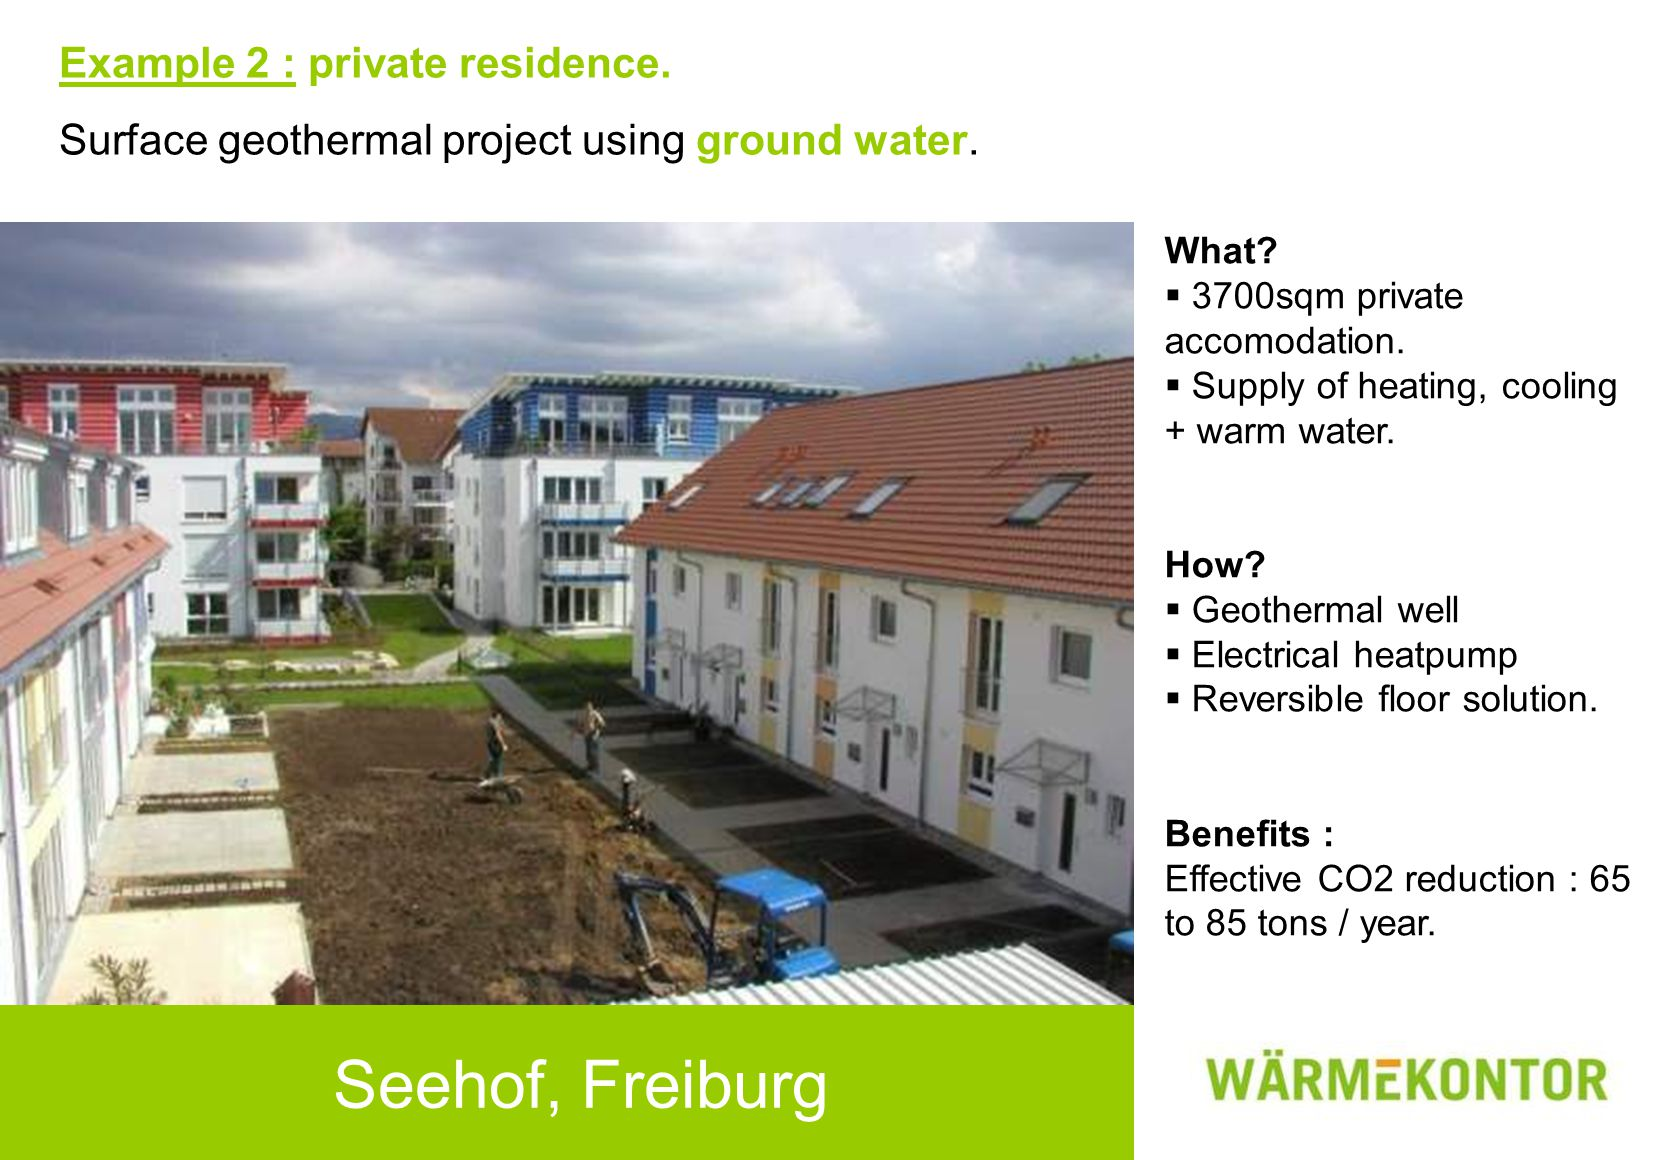 Seehof, Freiburg Example 2 : private residence. Surface geothermal project using ground water.